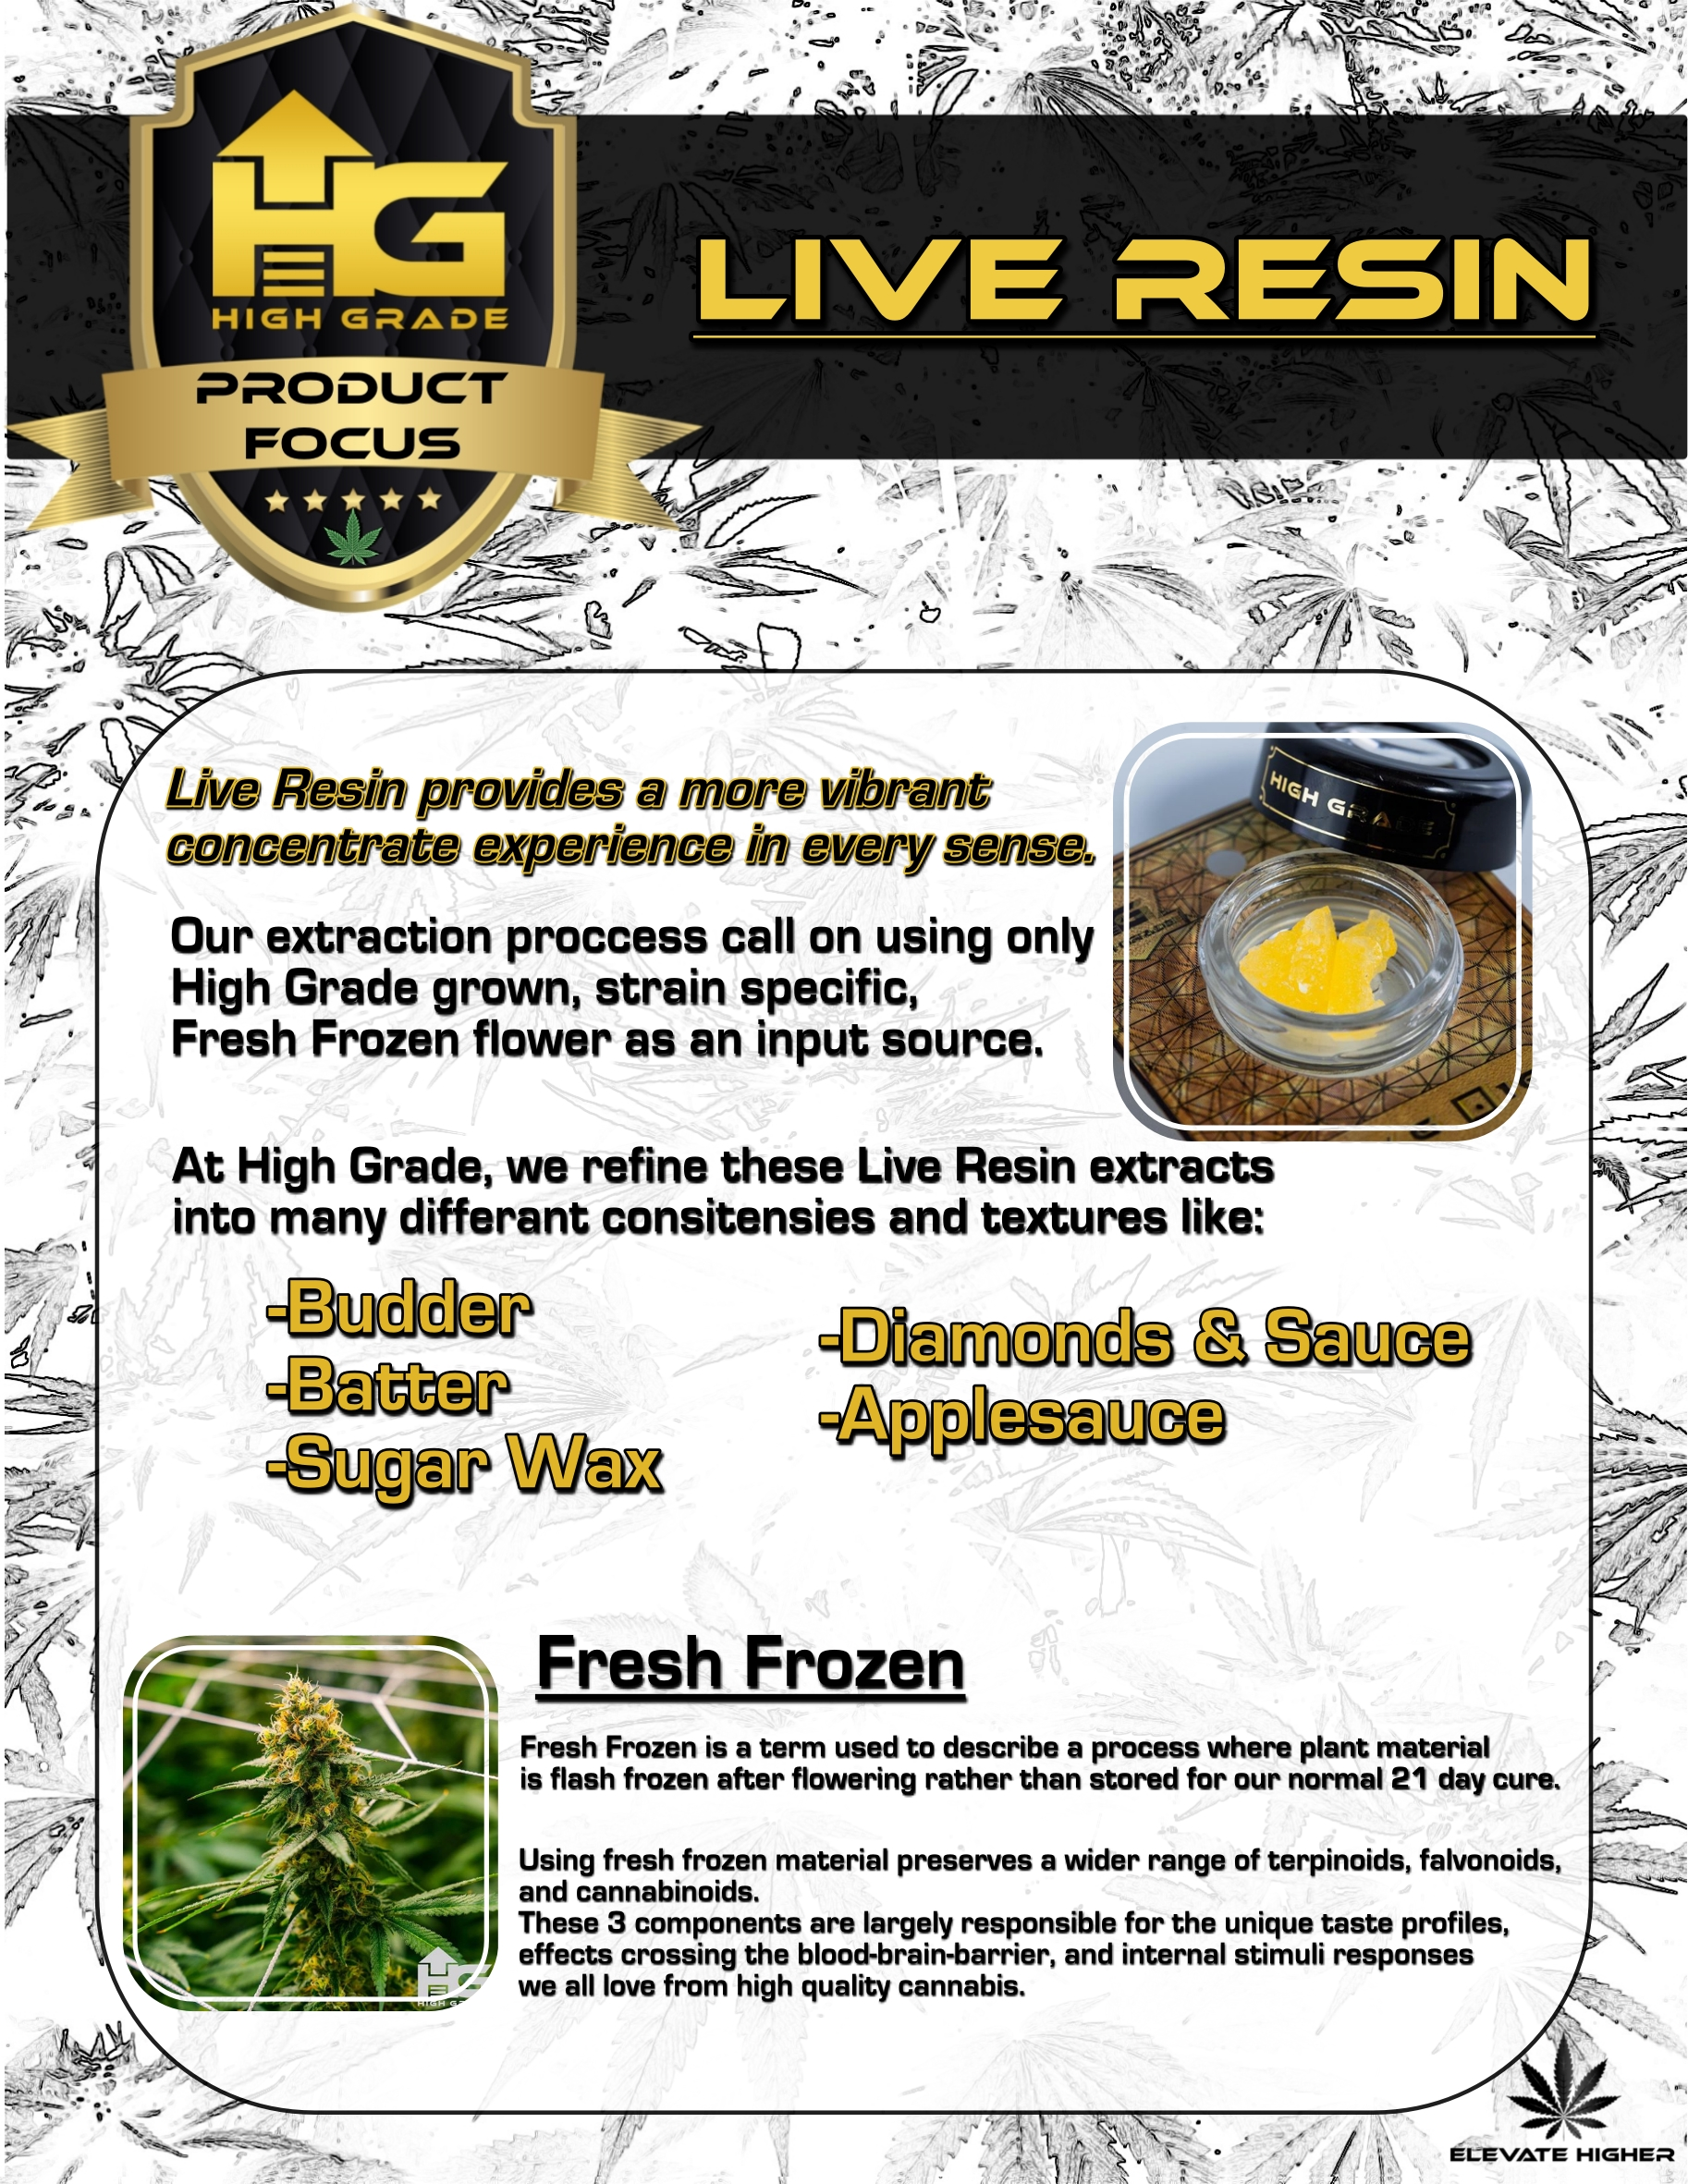 Live Resins: Maximum Vibrance in Taste and Effects